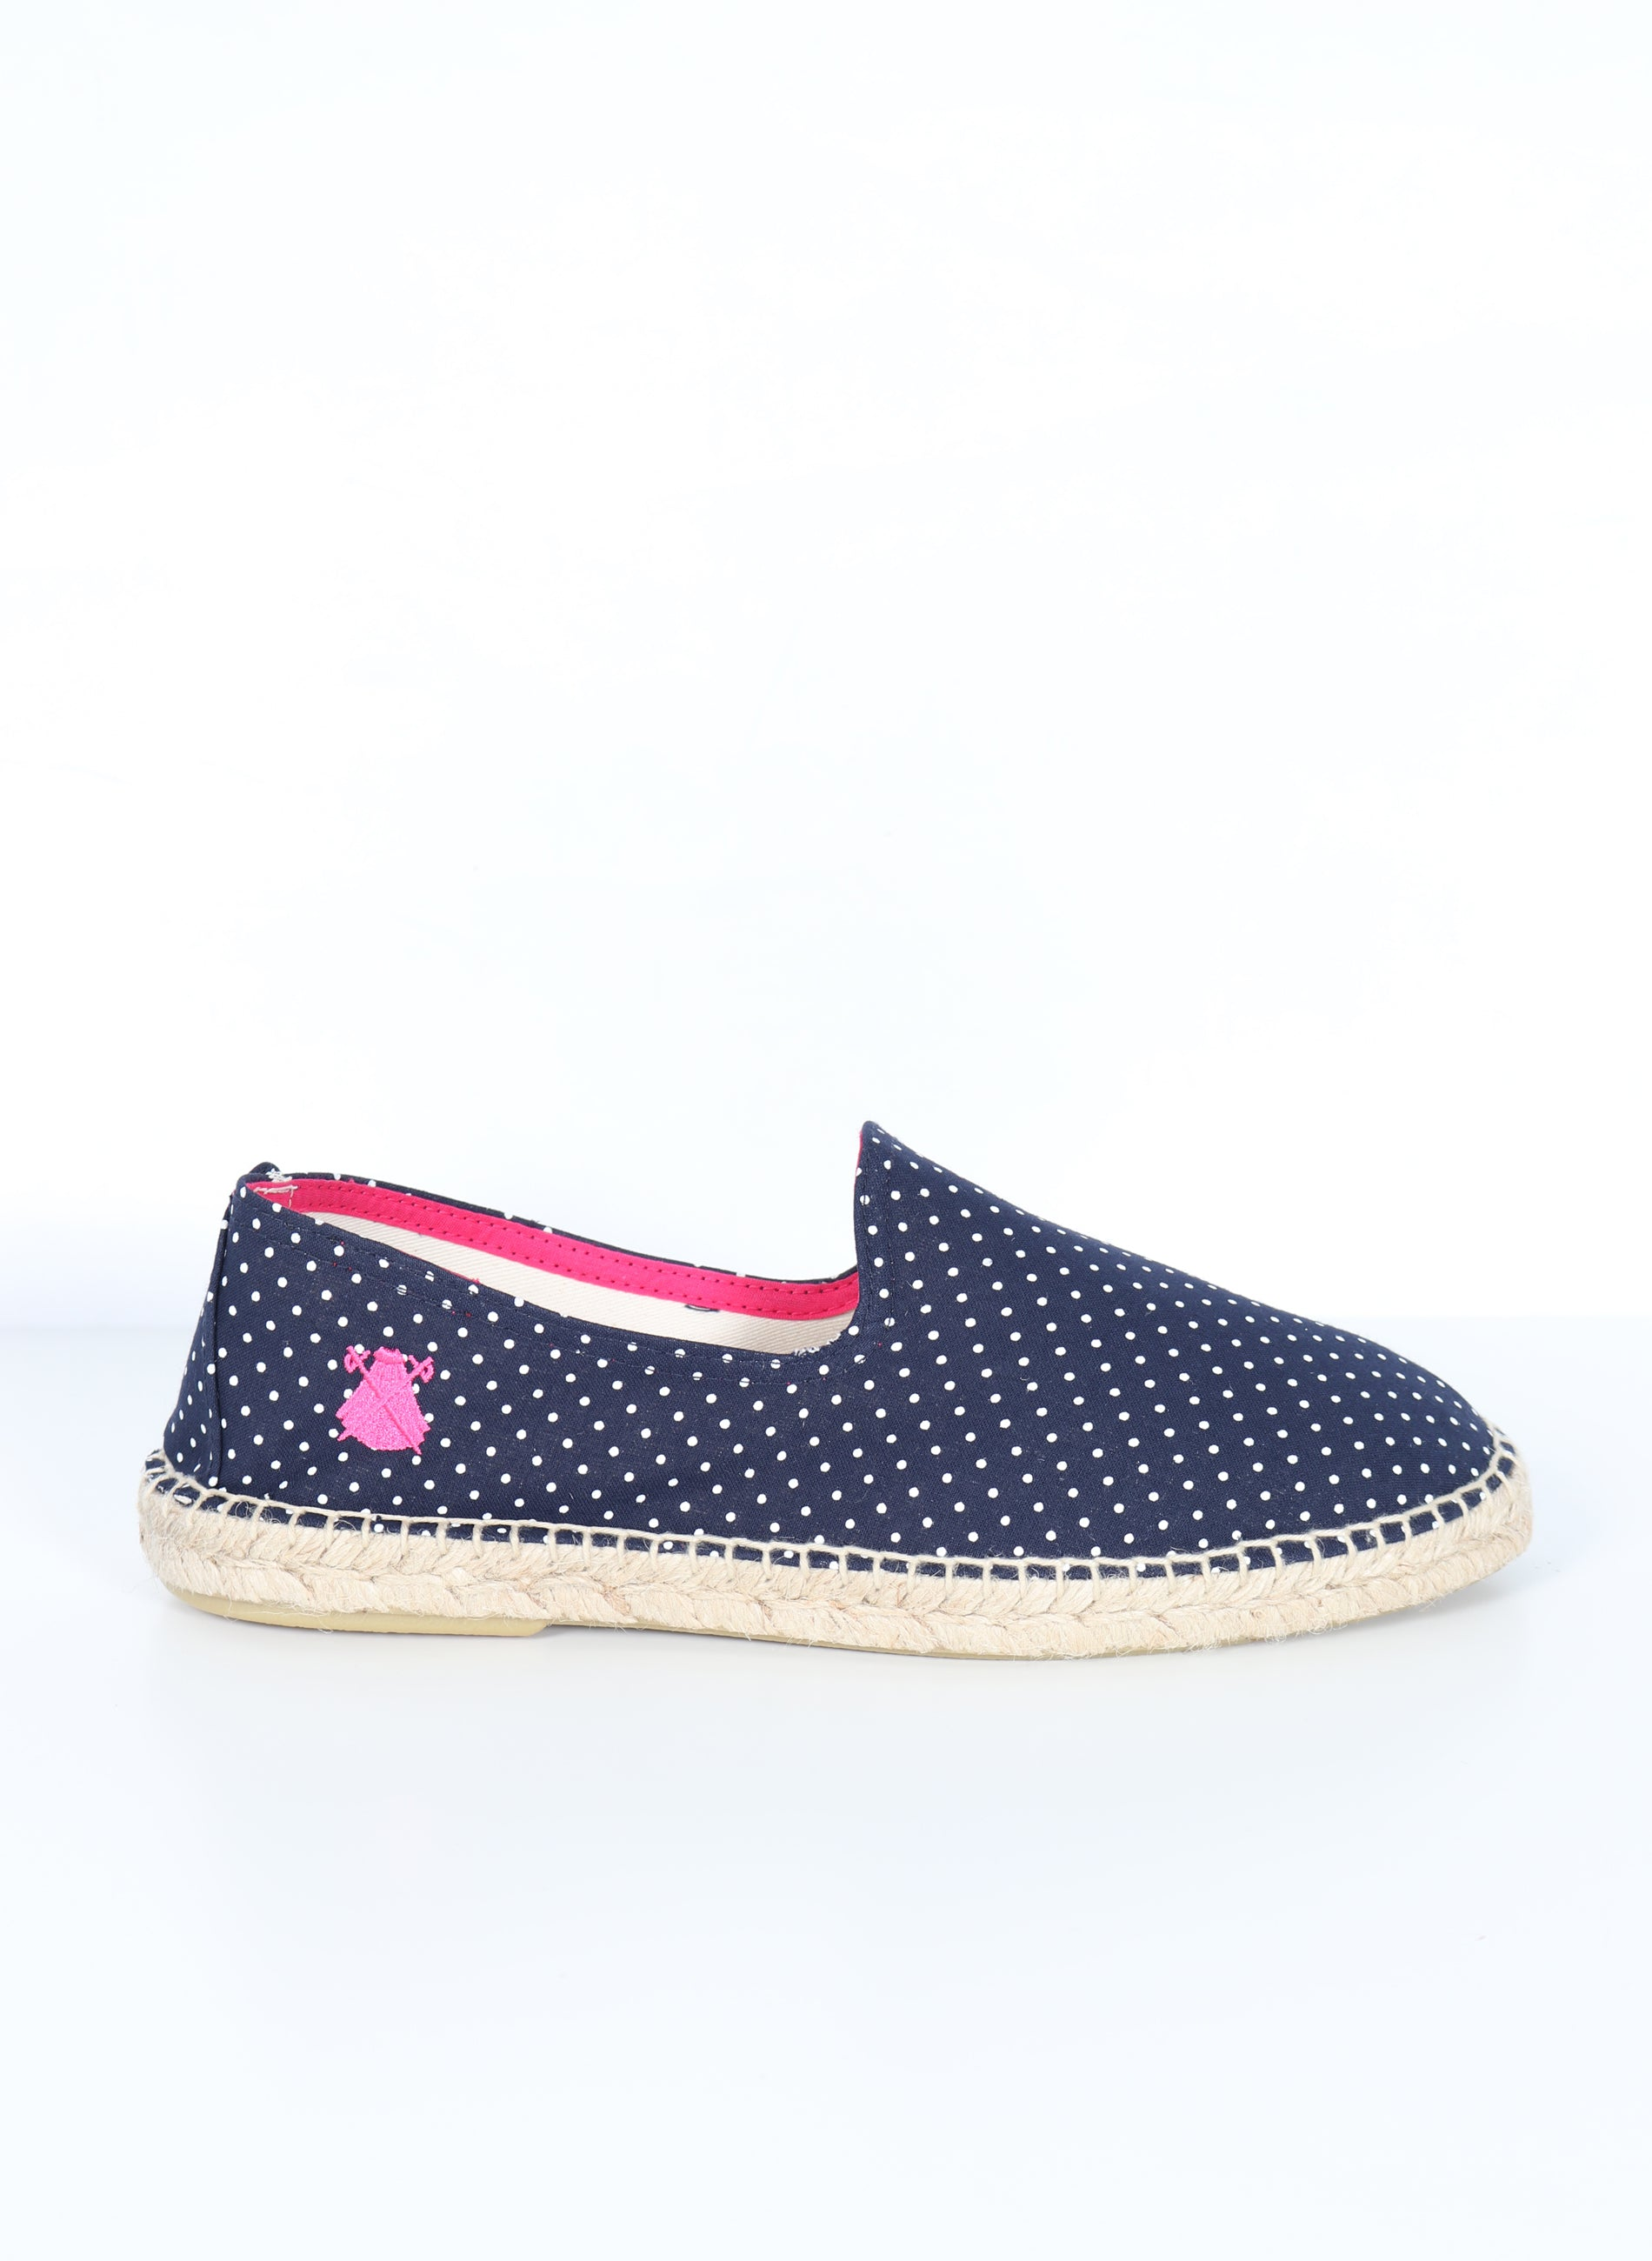 Espadrilles Man Navy Blue White Polka Dots